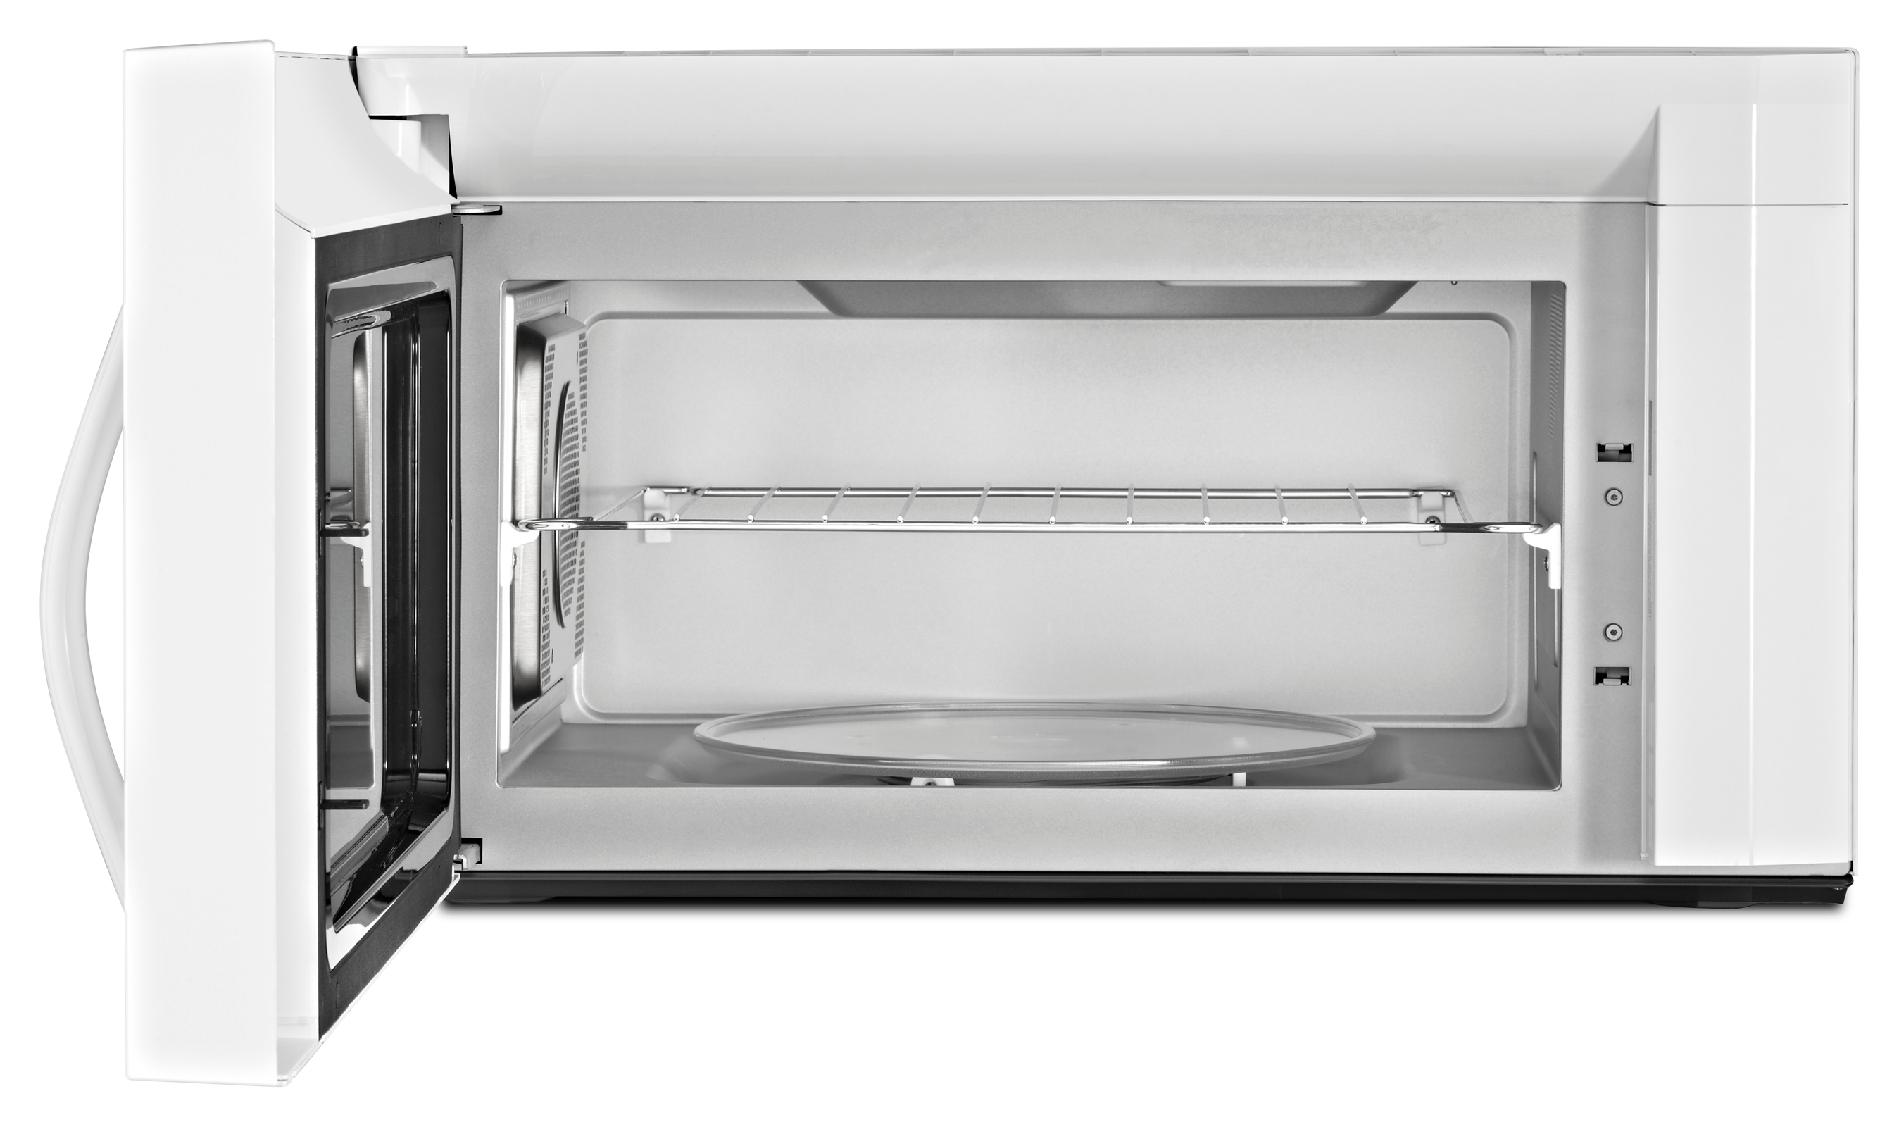 Whirlpool 1.9 cu. ft. Over-the-Range Microwave w/ TimeSavor™ Plus True Convection Cooking System - White